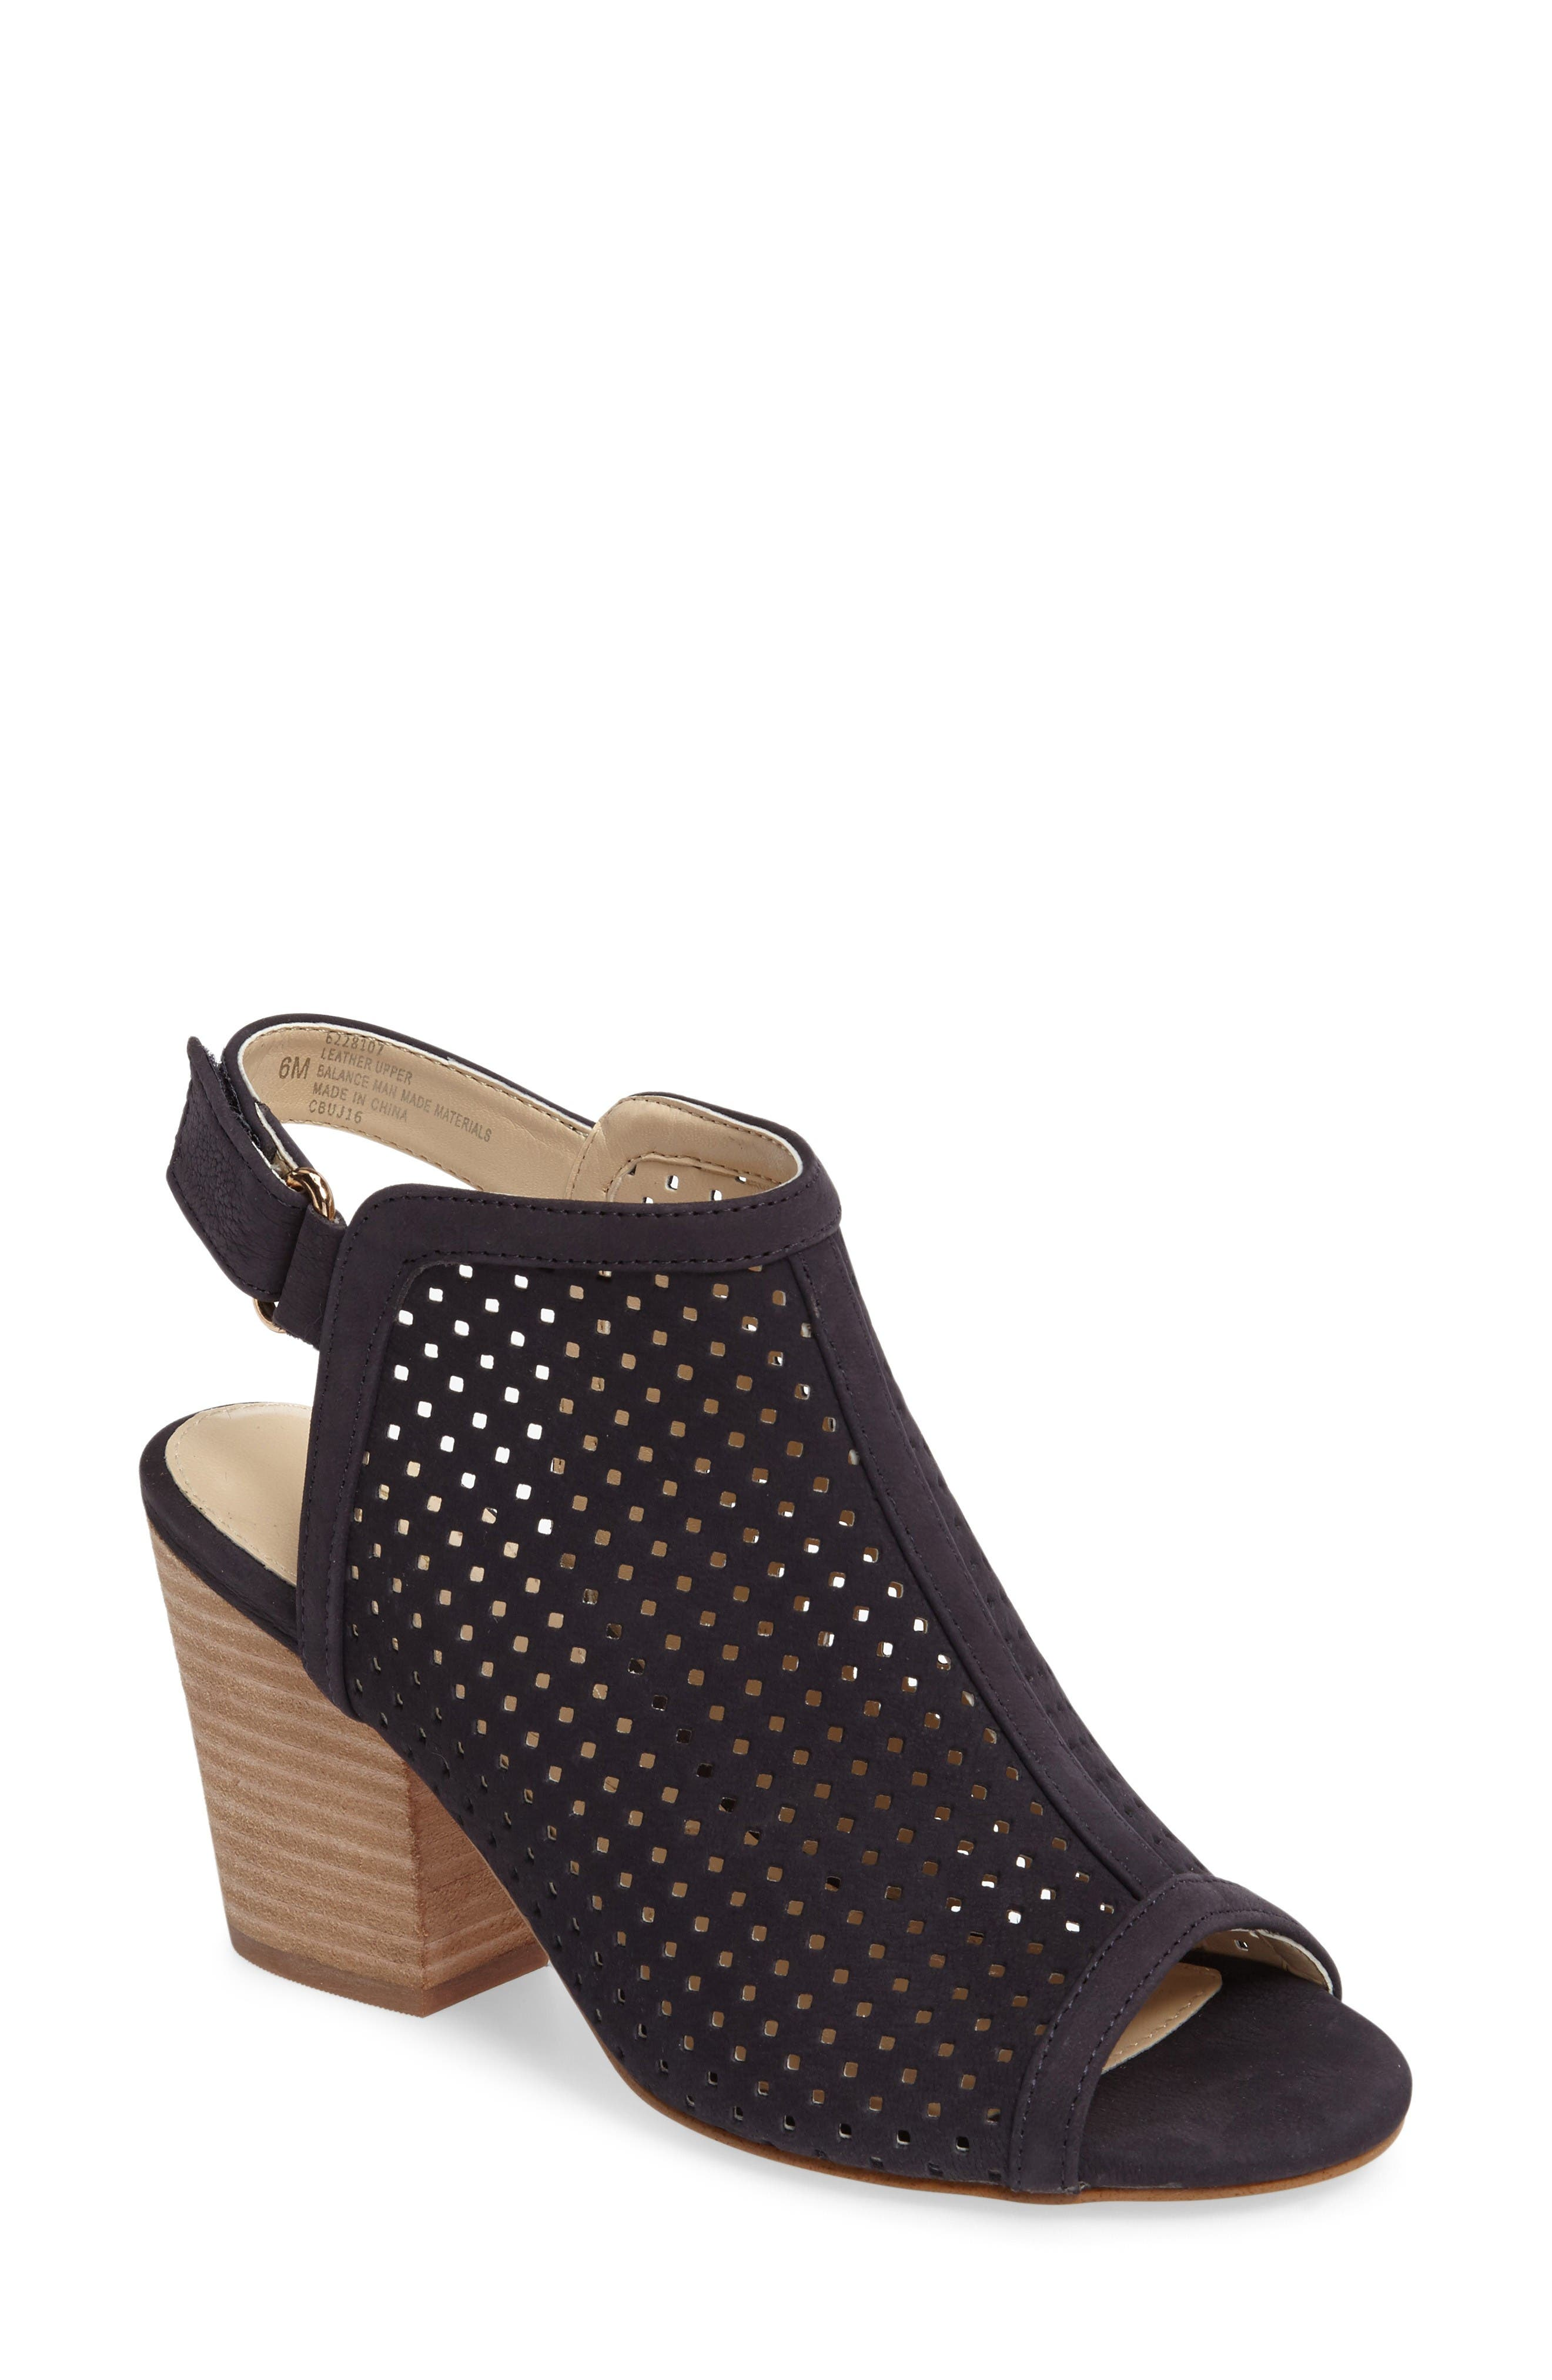 Main Image - Isolá 'Lora' Perforated Open-Toe Bootie Sandal (Women)